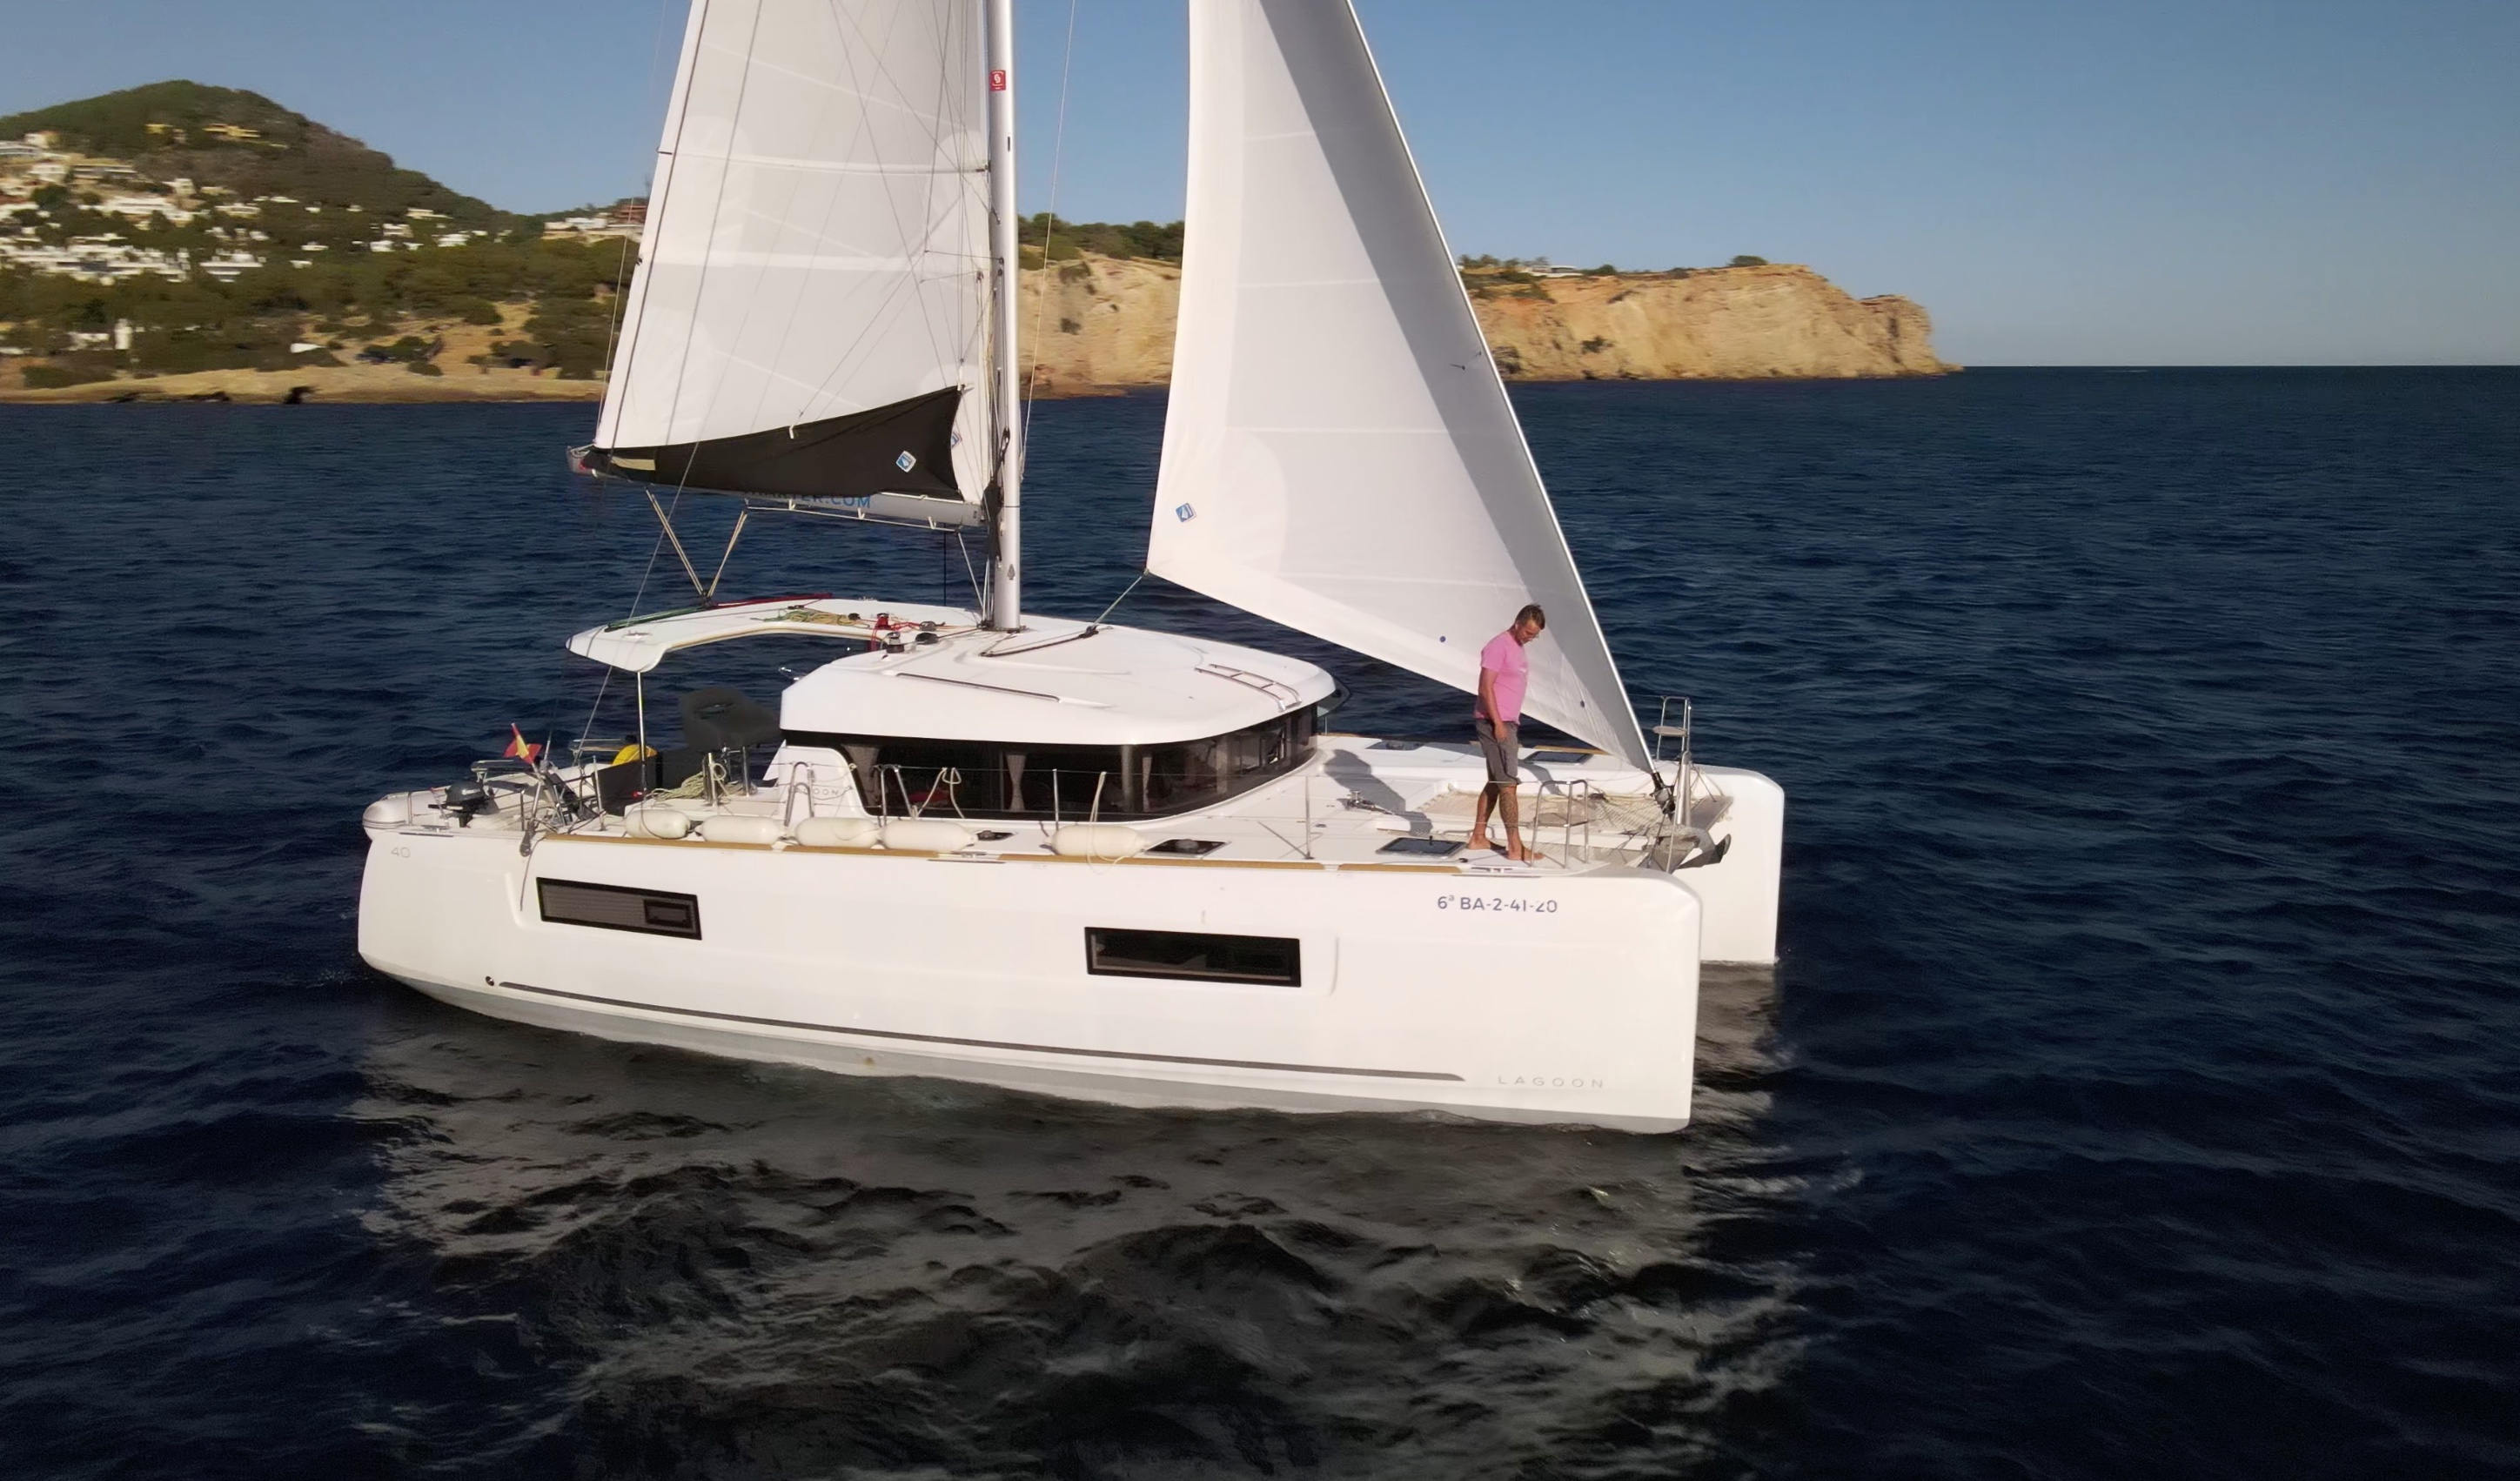 CATAMARAN CHARTER IBIZA MALLORCA LAGOON 40 HOLIDAY WEEKLY BOAT RENTAL